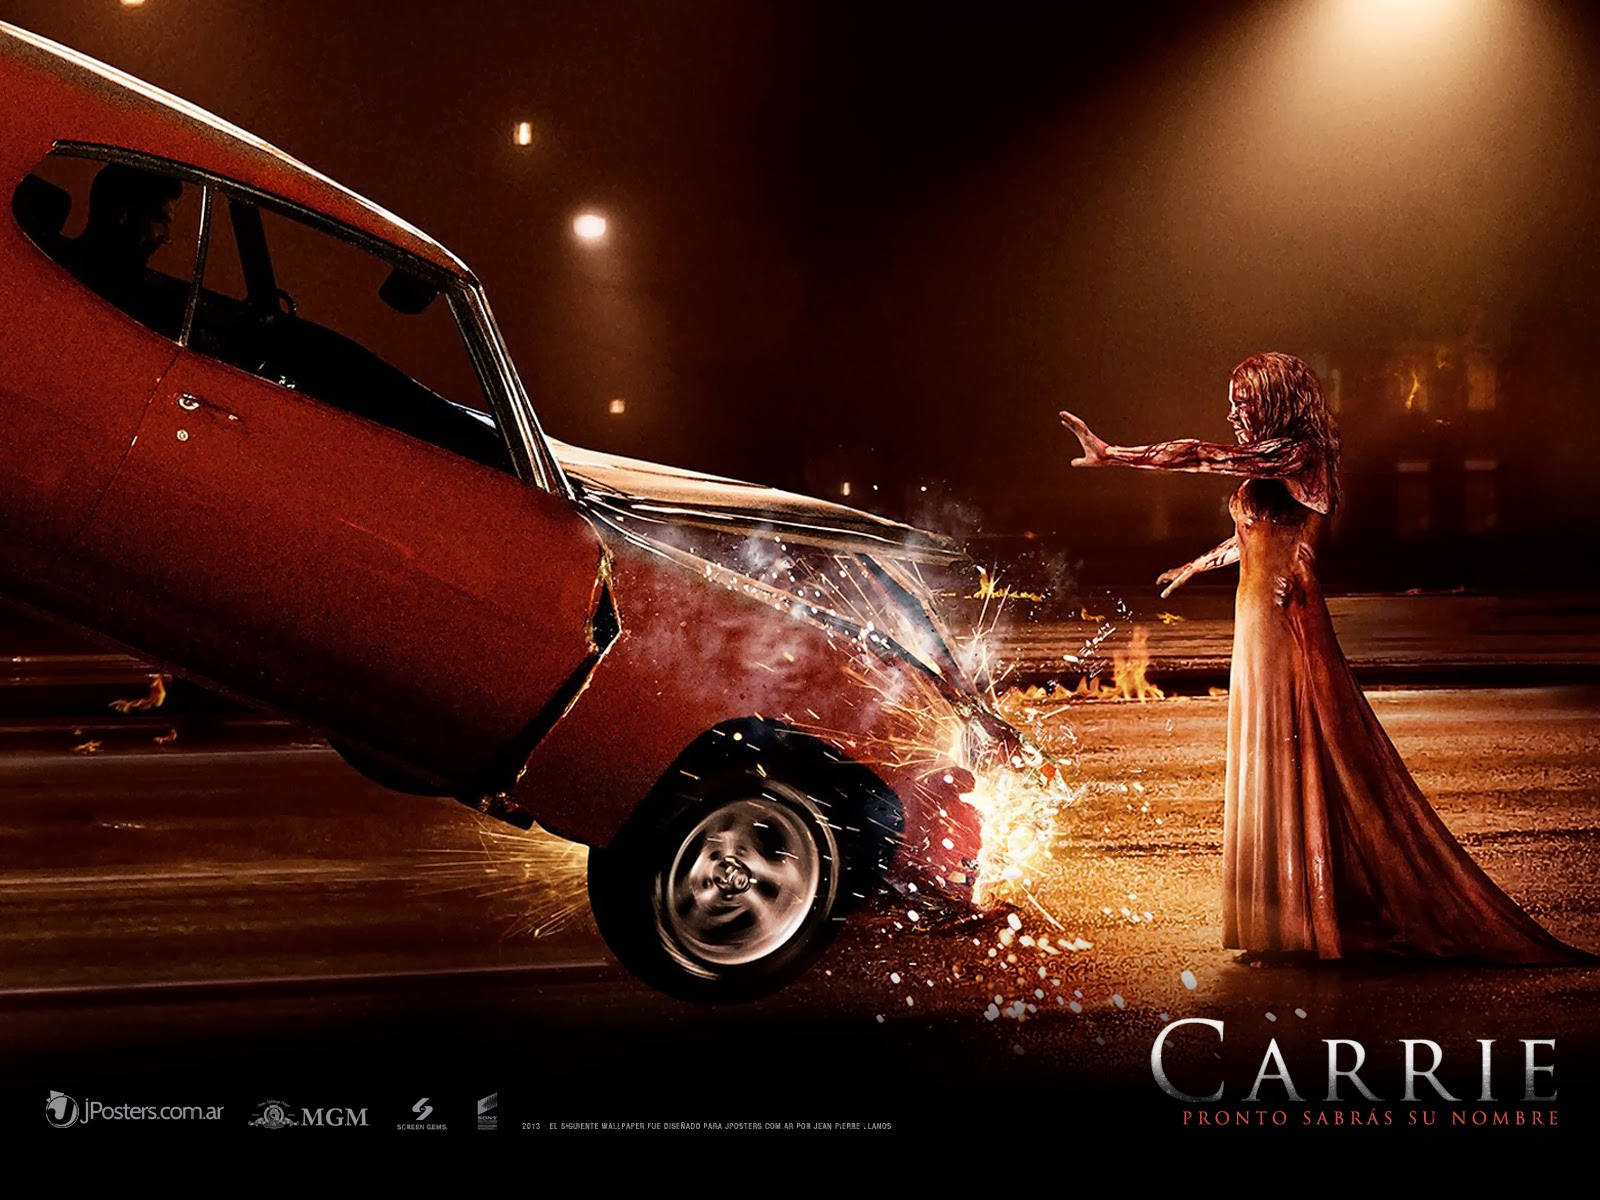 3840x1080 Wallpaper Car Carrie Wallpaper And Background Image 1600x1200 Id 465123